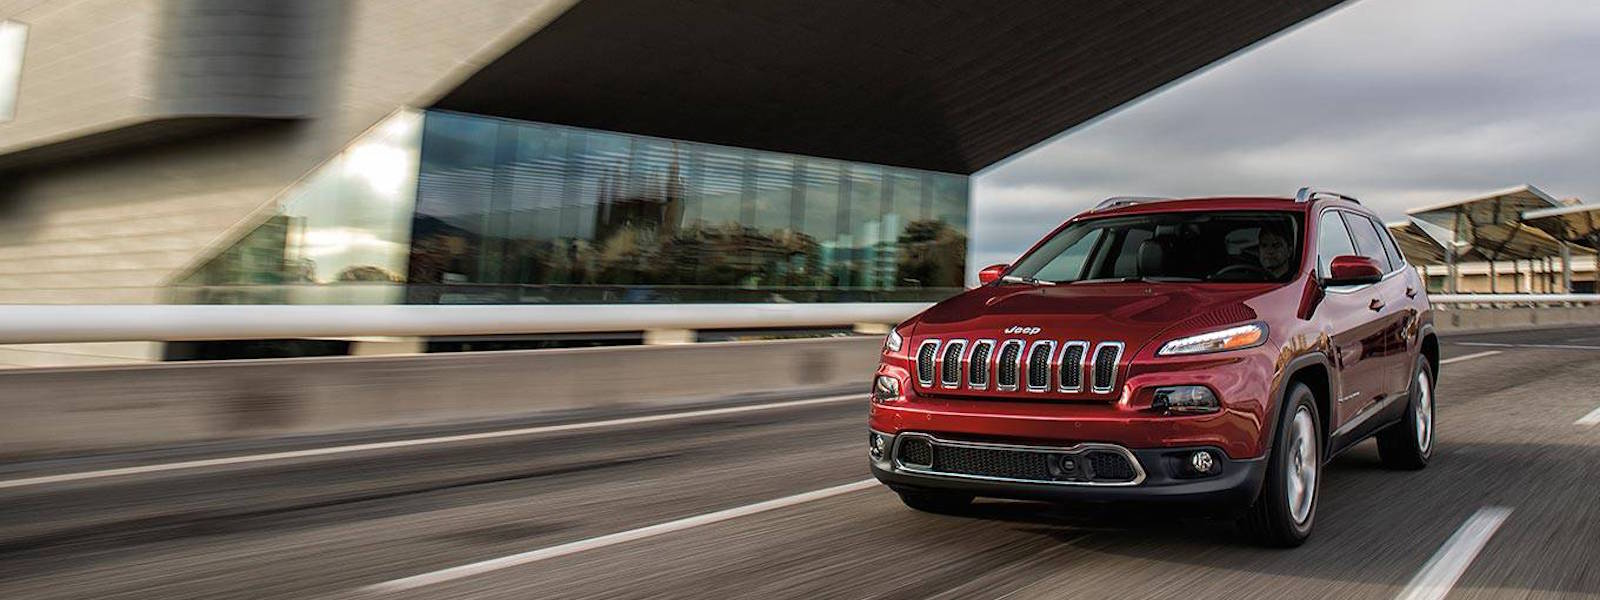 2016 Jeep Cherokee Performance driving under overpass building in Colorado Springs, CO.